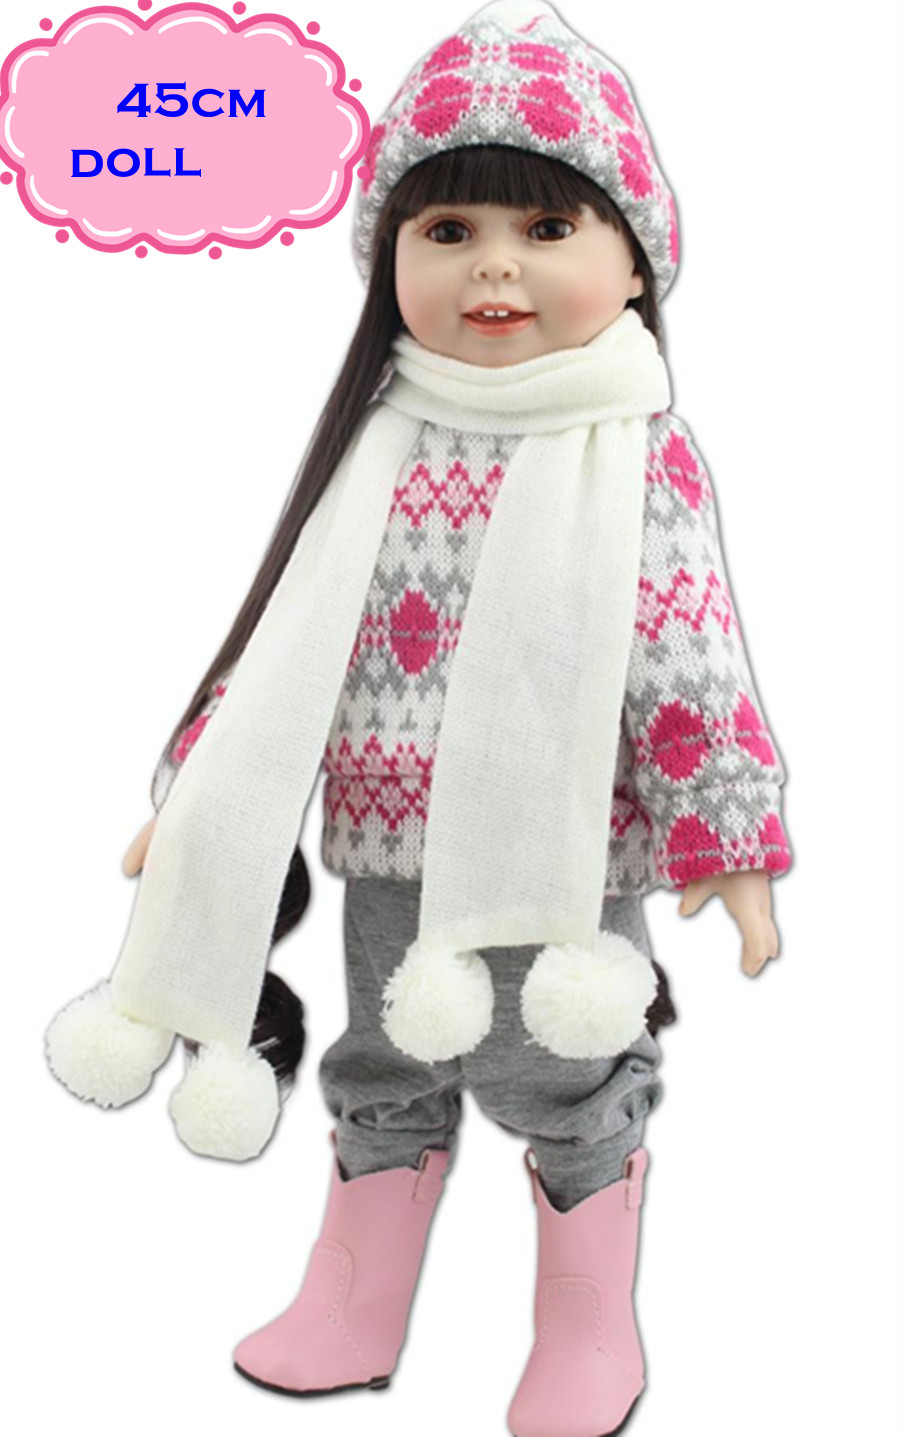 ФОТО New NPK Full Vinyl Silicone Reborn American Girl Doll About 18inch Lovely Reborn Dolls Babies In Winter Clothes For Girls Gifts